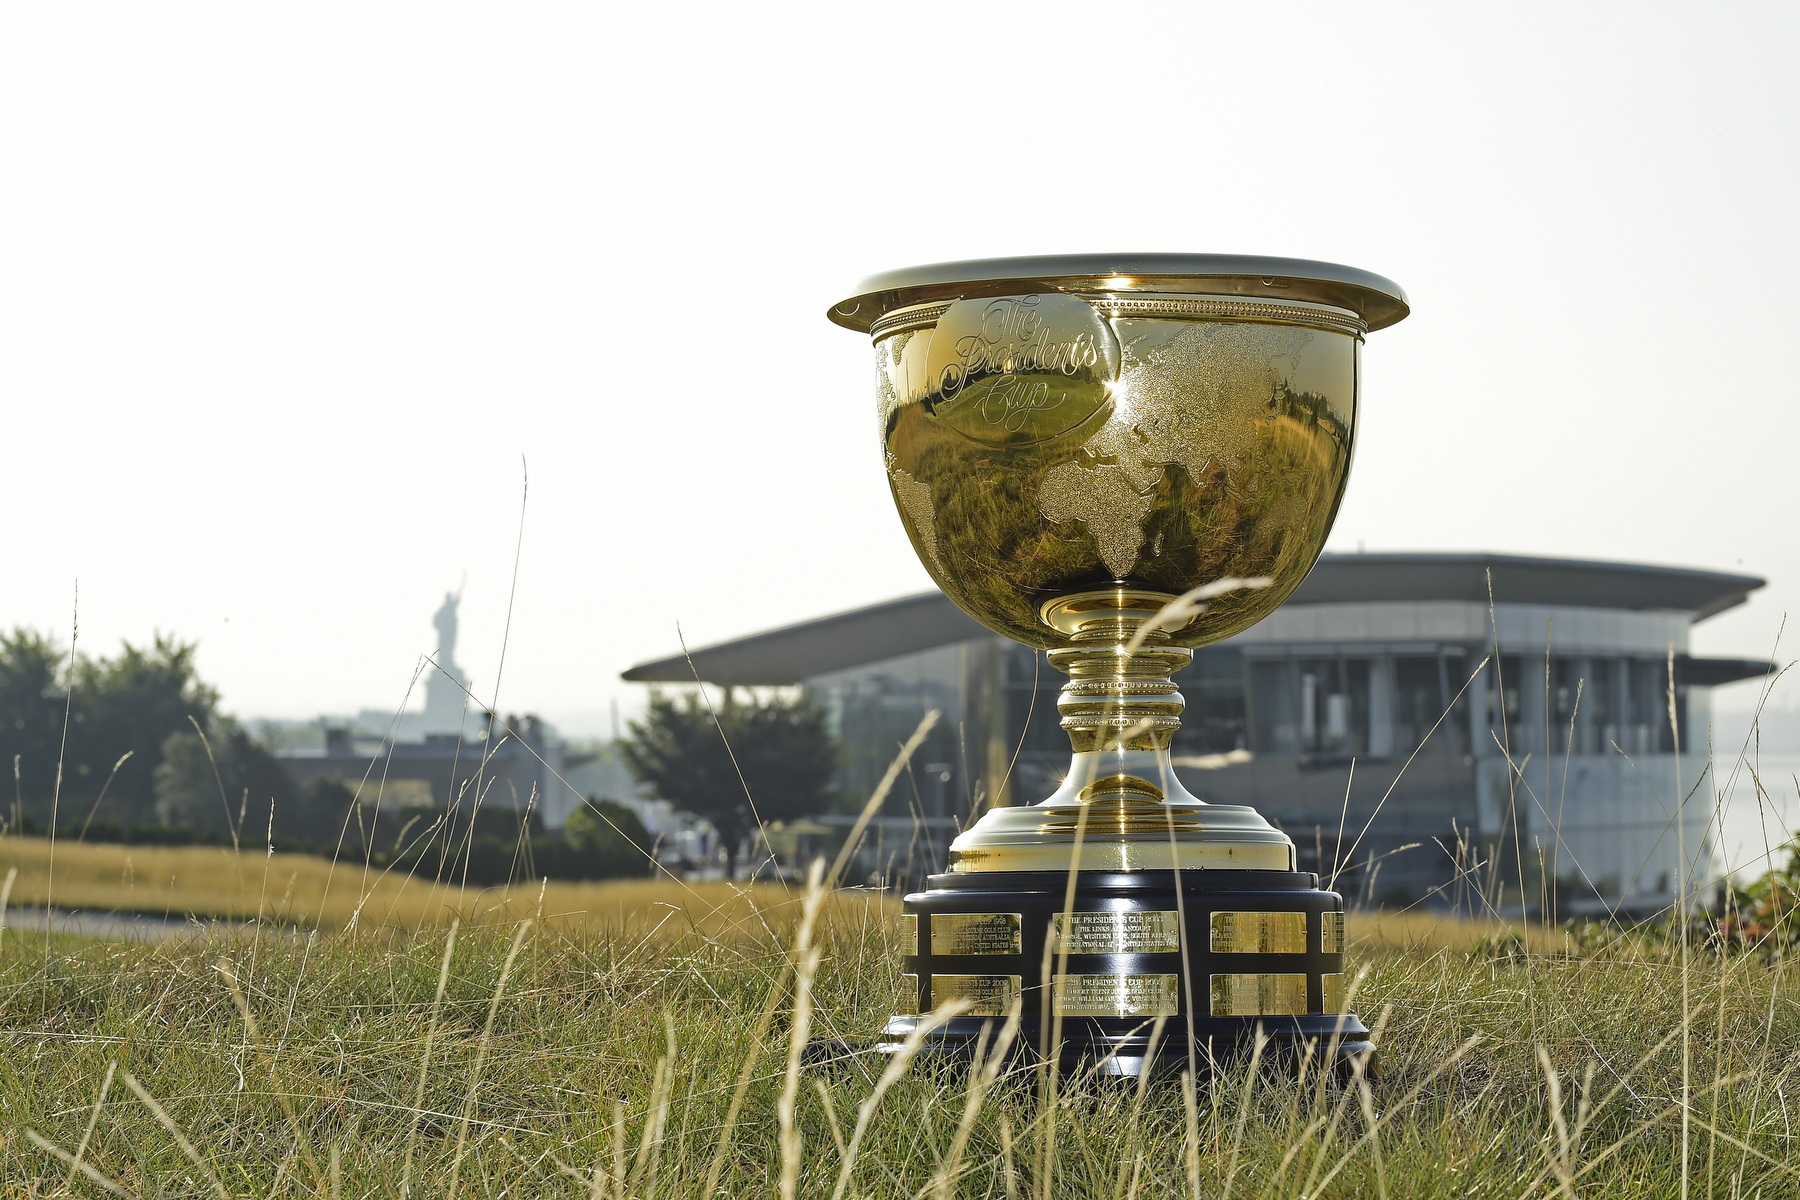 JERSEY CITY, NJ - AUGUST 26: At a flag-raising ceremony today overlooking the Manhattan skyline and Statue of Liberty, PGA TOUR Commissioner Tim Finchem officially announced Liberty National as host site for The Presidents Cup when it is next staged in the United States, in 2017. The announcement is part of a 25- year partnership between Liberty National and the PGA TOUR, which will bring a total of 10 PGA TOUR events to the venue over the course of the agreement. Joining Finchem to mark the occasion was Liberty National co-founders Paul Fireman and Dan Fireman, as well as Jersey City Major Steven Fulop. on August 26, 2014 in Jersey City, New Jersey. (Photo by Chris Condon/PGA TOUR) *** Local Caption ***